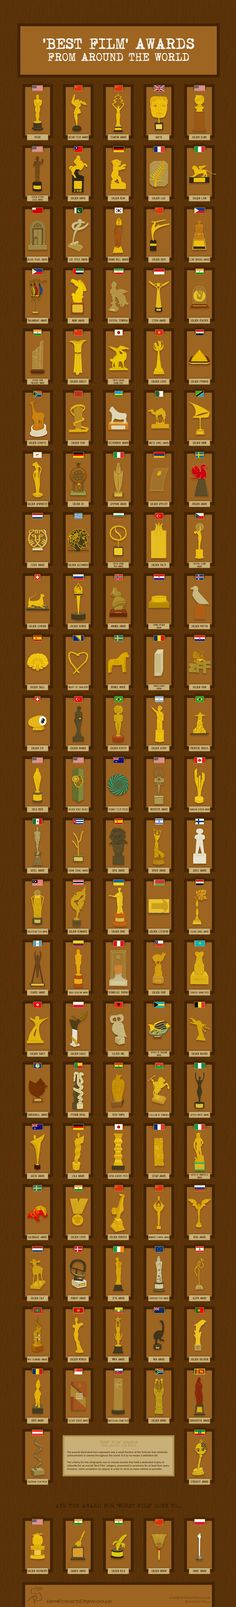 Best Film Awards From Around the World #infographic #Film #Awards #Movie #Entertainment